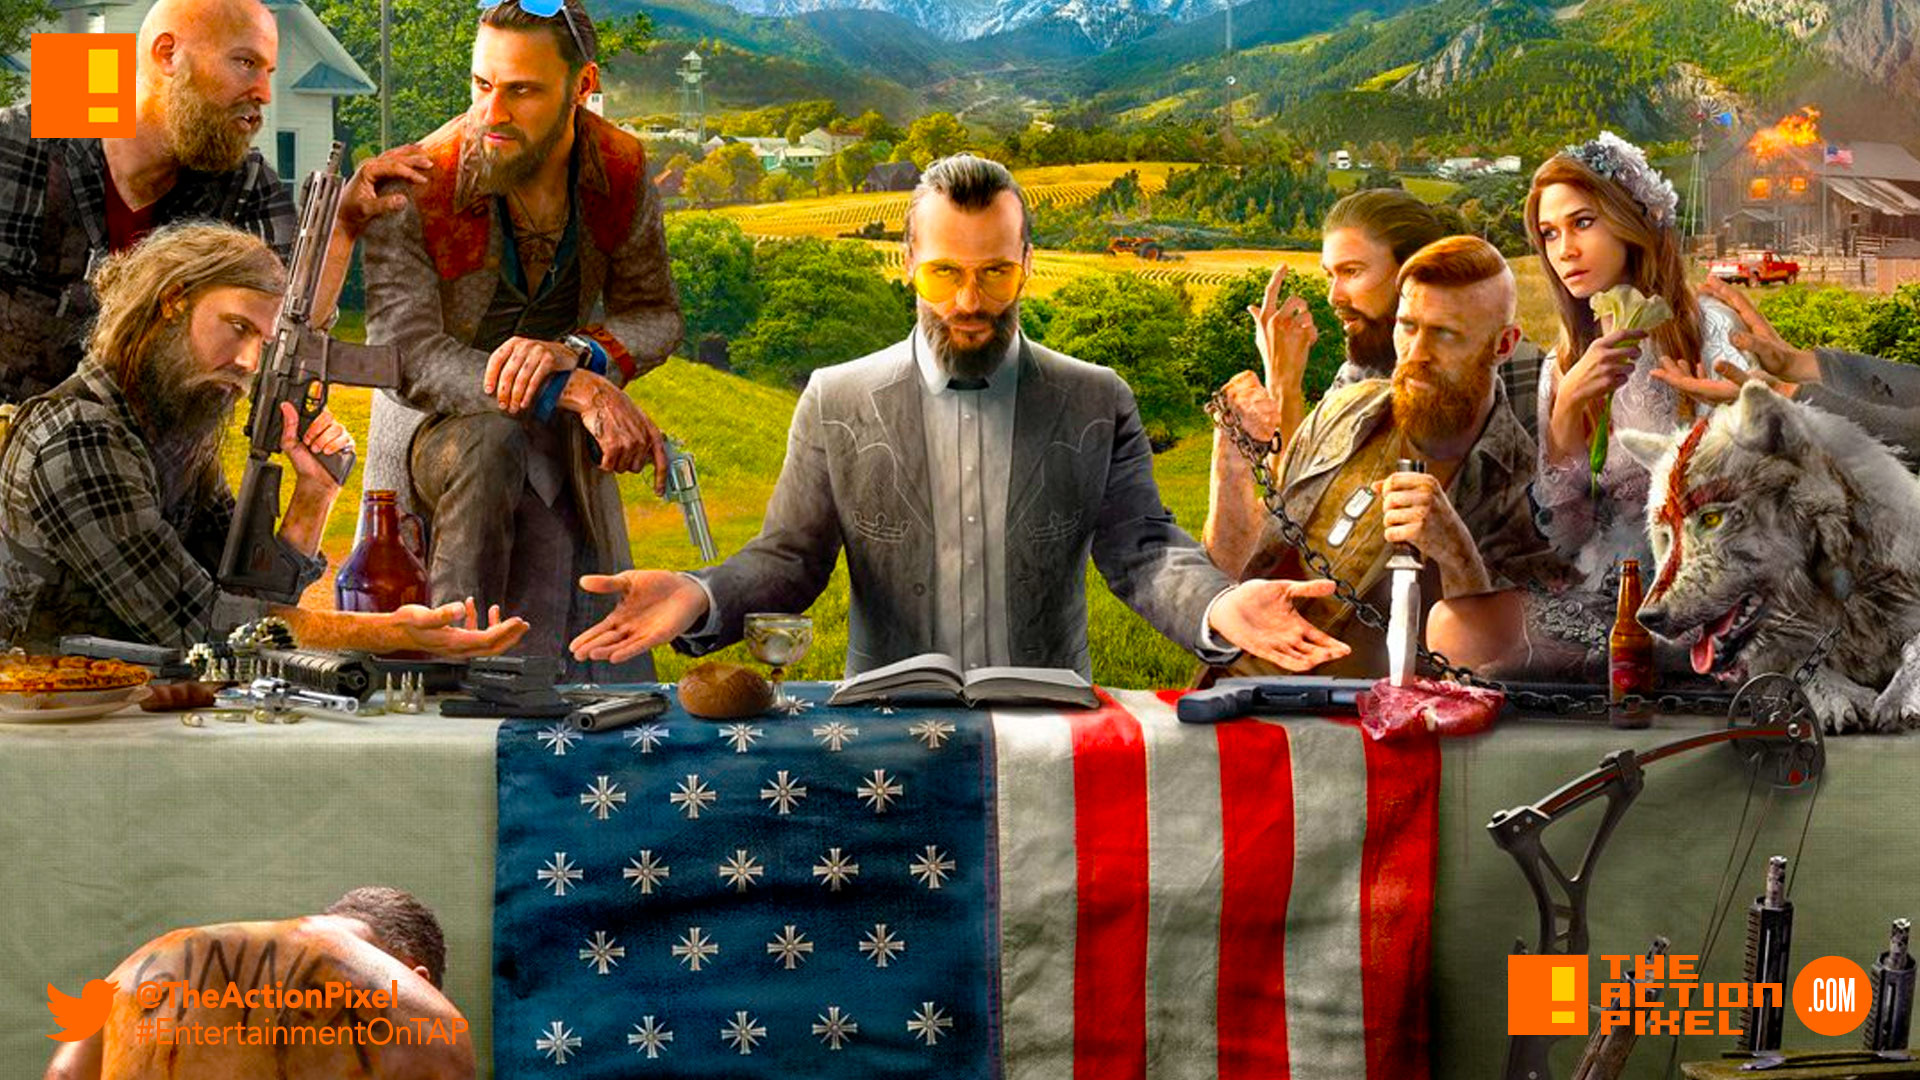 far cry, ubisoft, teaser, montana, hope country, america, teaser, teaser trailers, trailers, worldwide reveal, the action pixel,entertainment on tap,